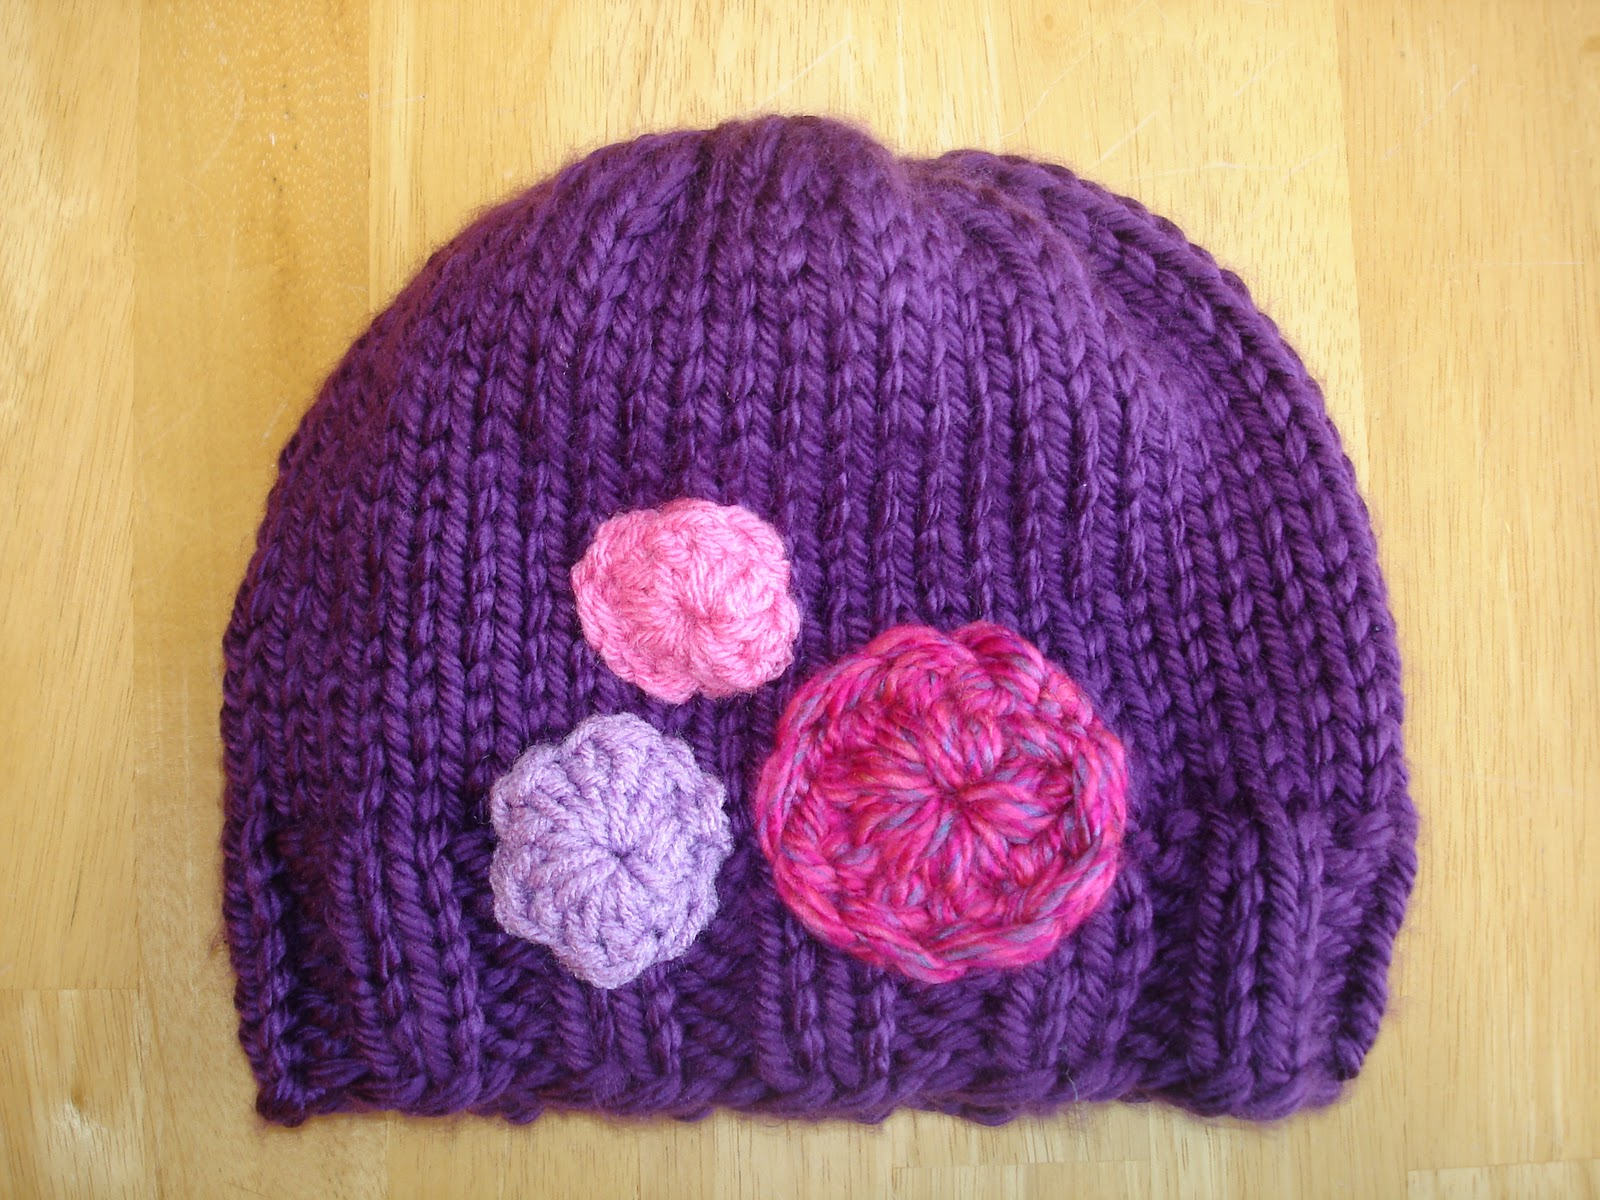 Knitting Patterns Kids Hats And Free Knitted Scarves For Kids